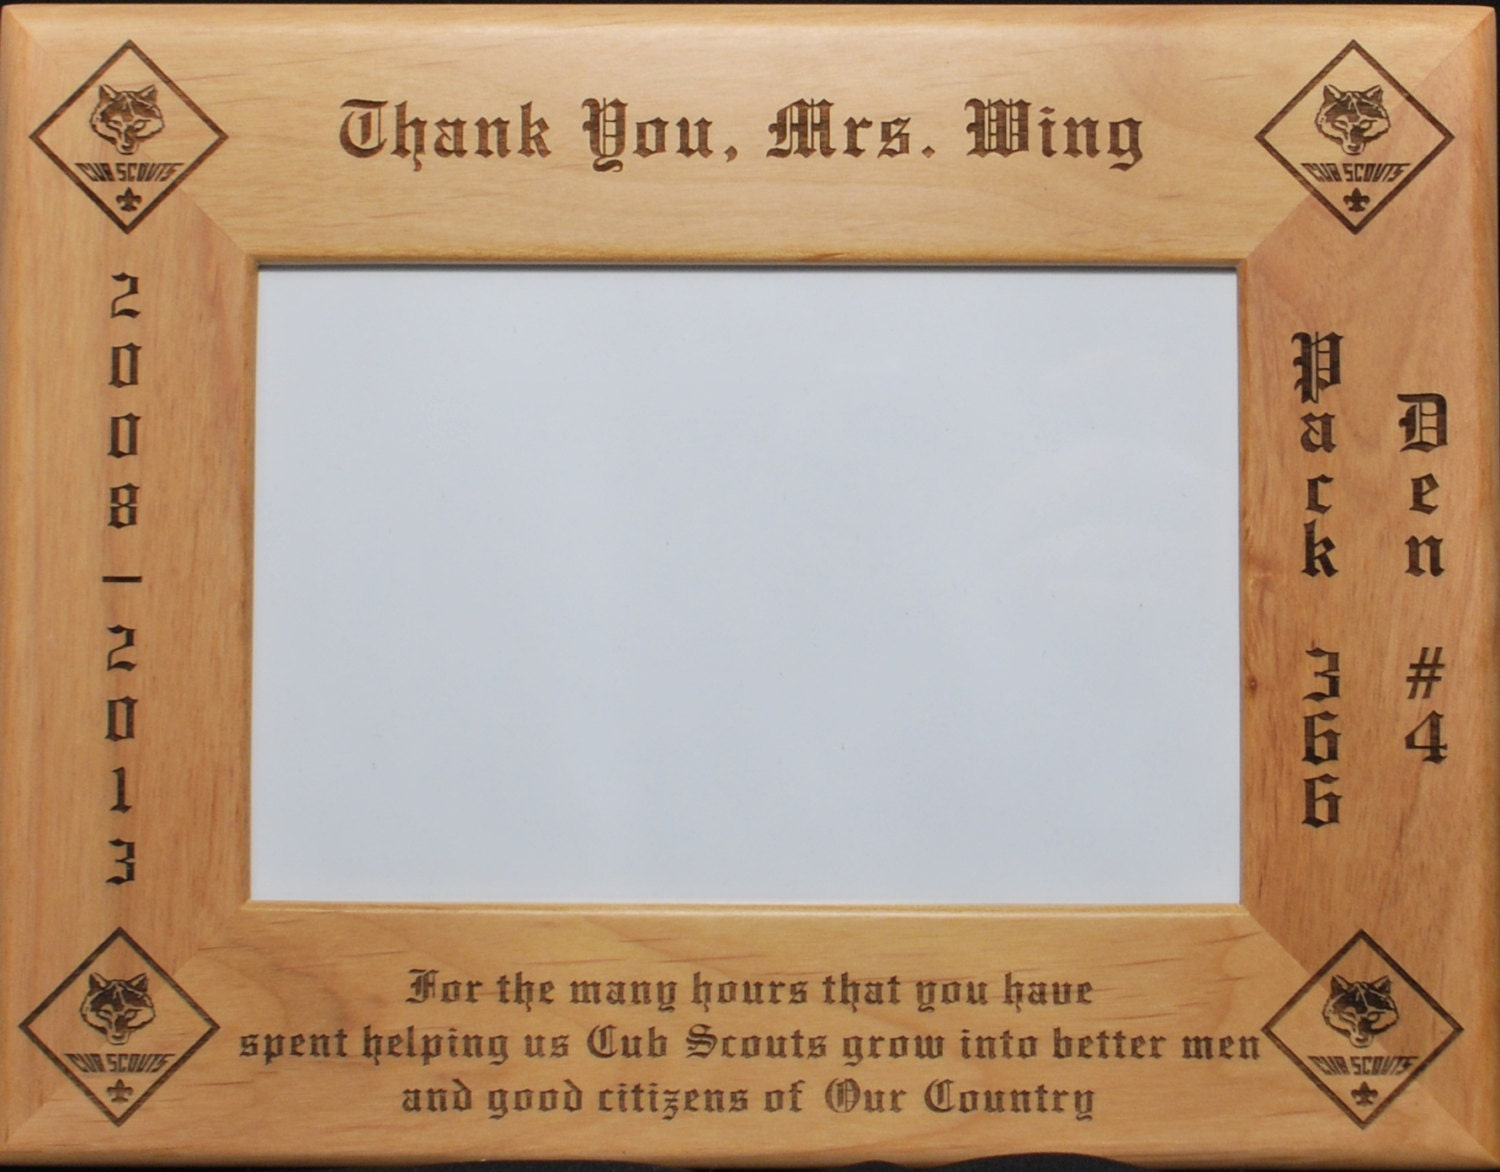 Cub scout boy scout thank you picture frame holds 8x10 picture zoom jeuxipadfo Image collections